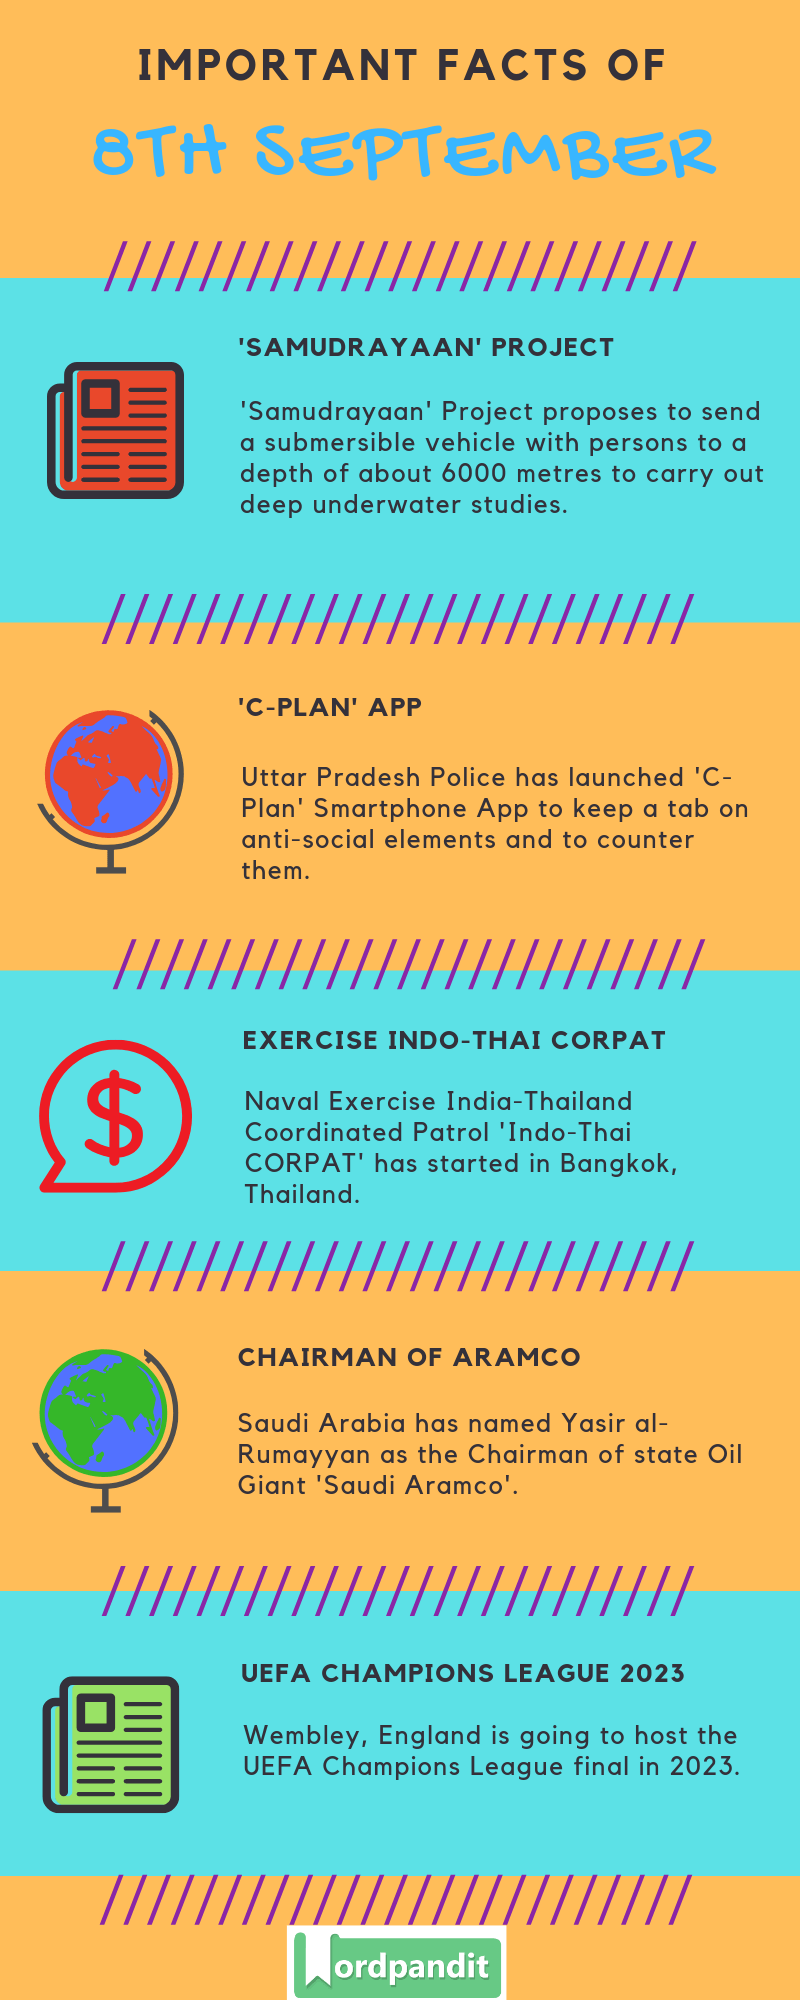 Daily Current Affairs 8 September 2019 Current Affairs Quiz 8 September 2019 Current Affairs Infographic